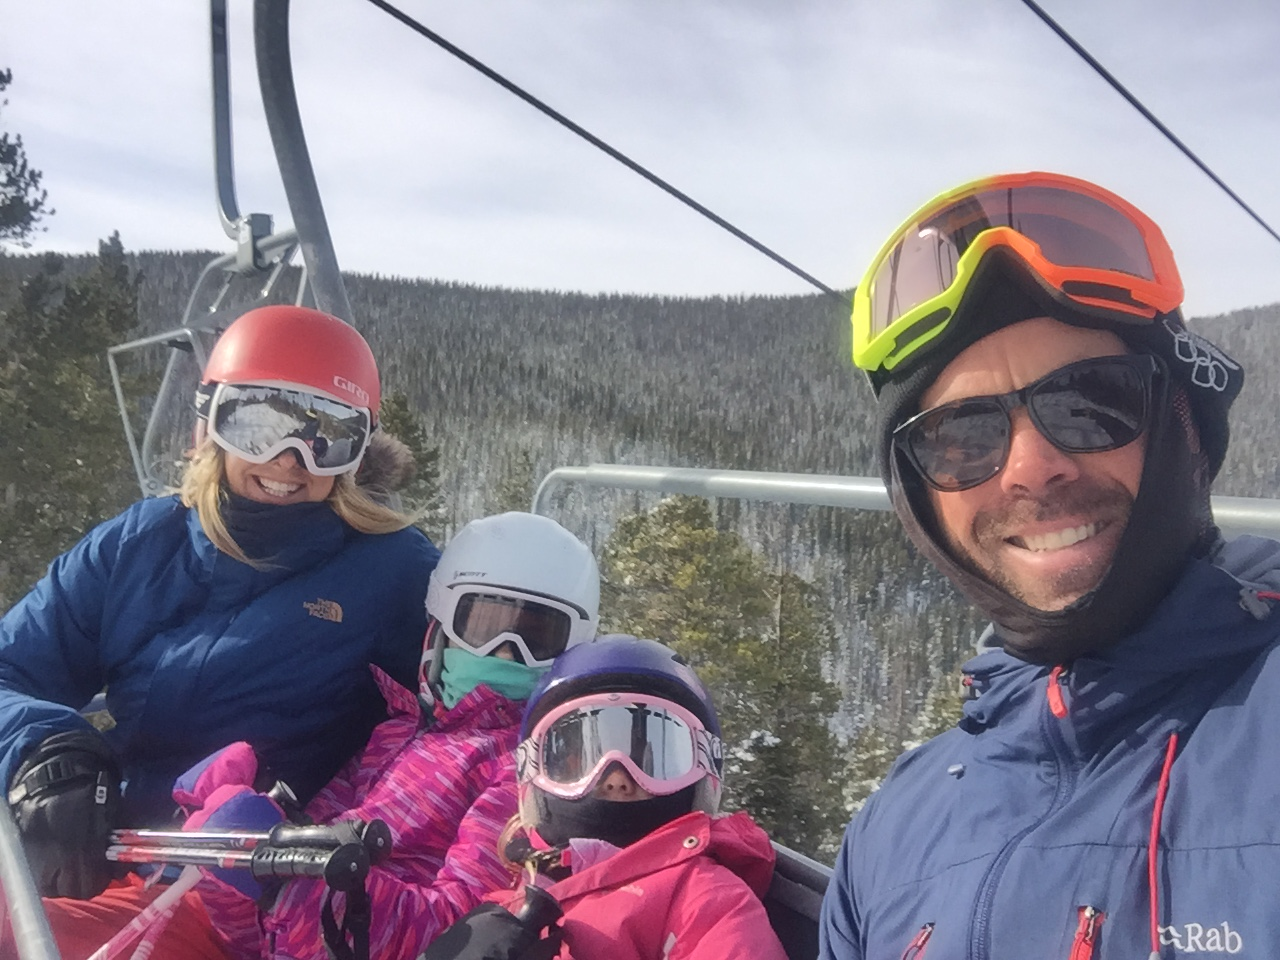 Tom & Family getting some vertical gains